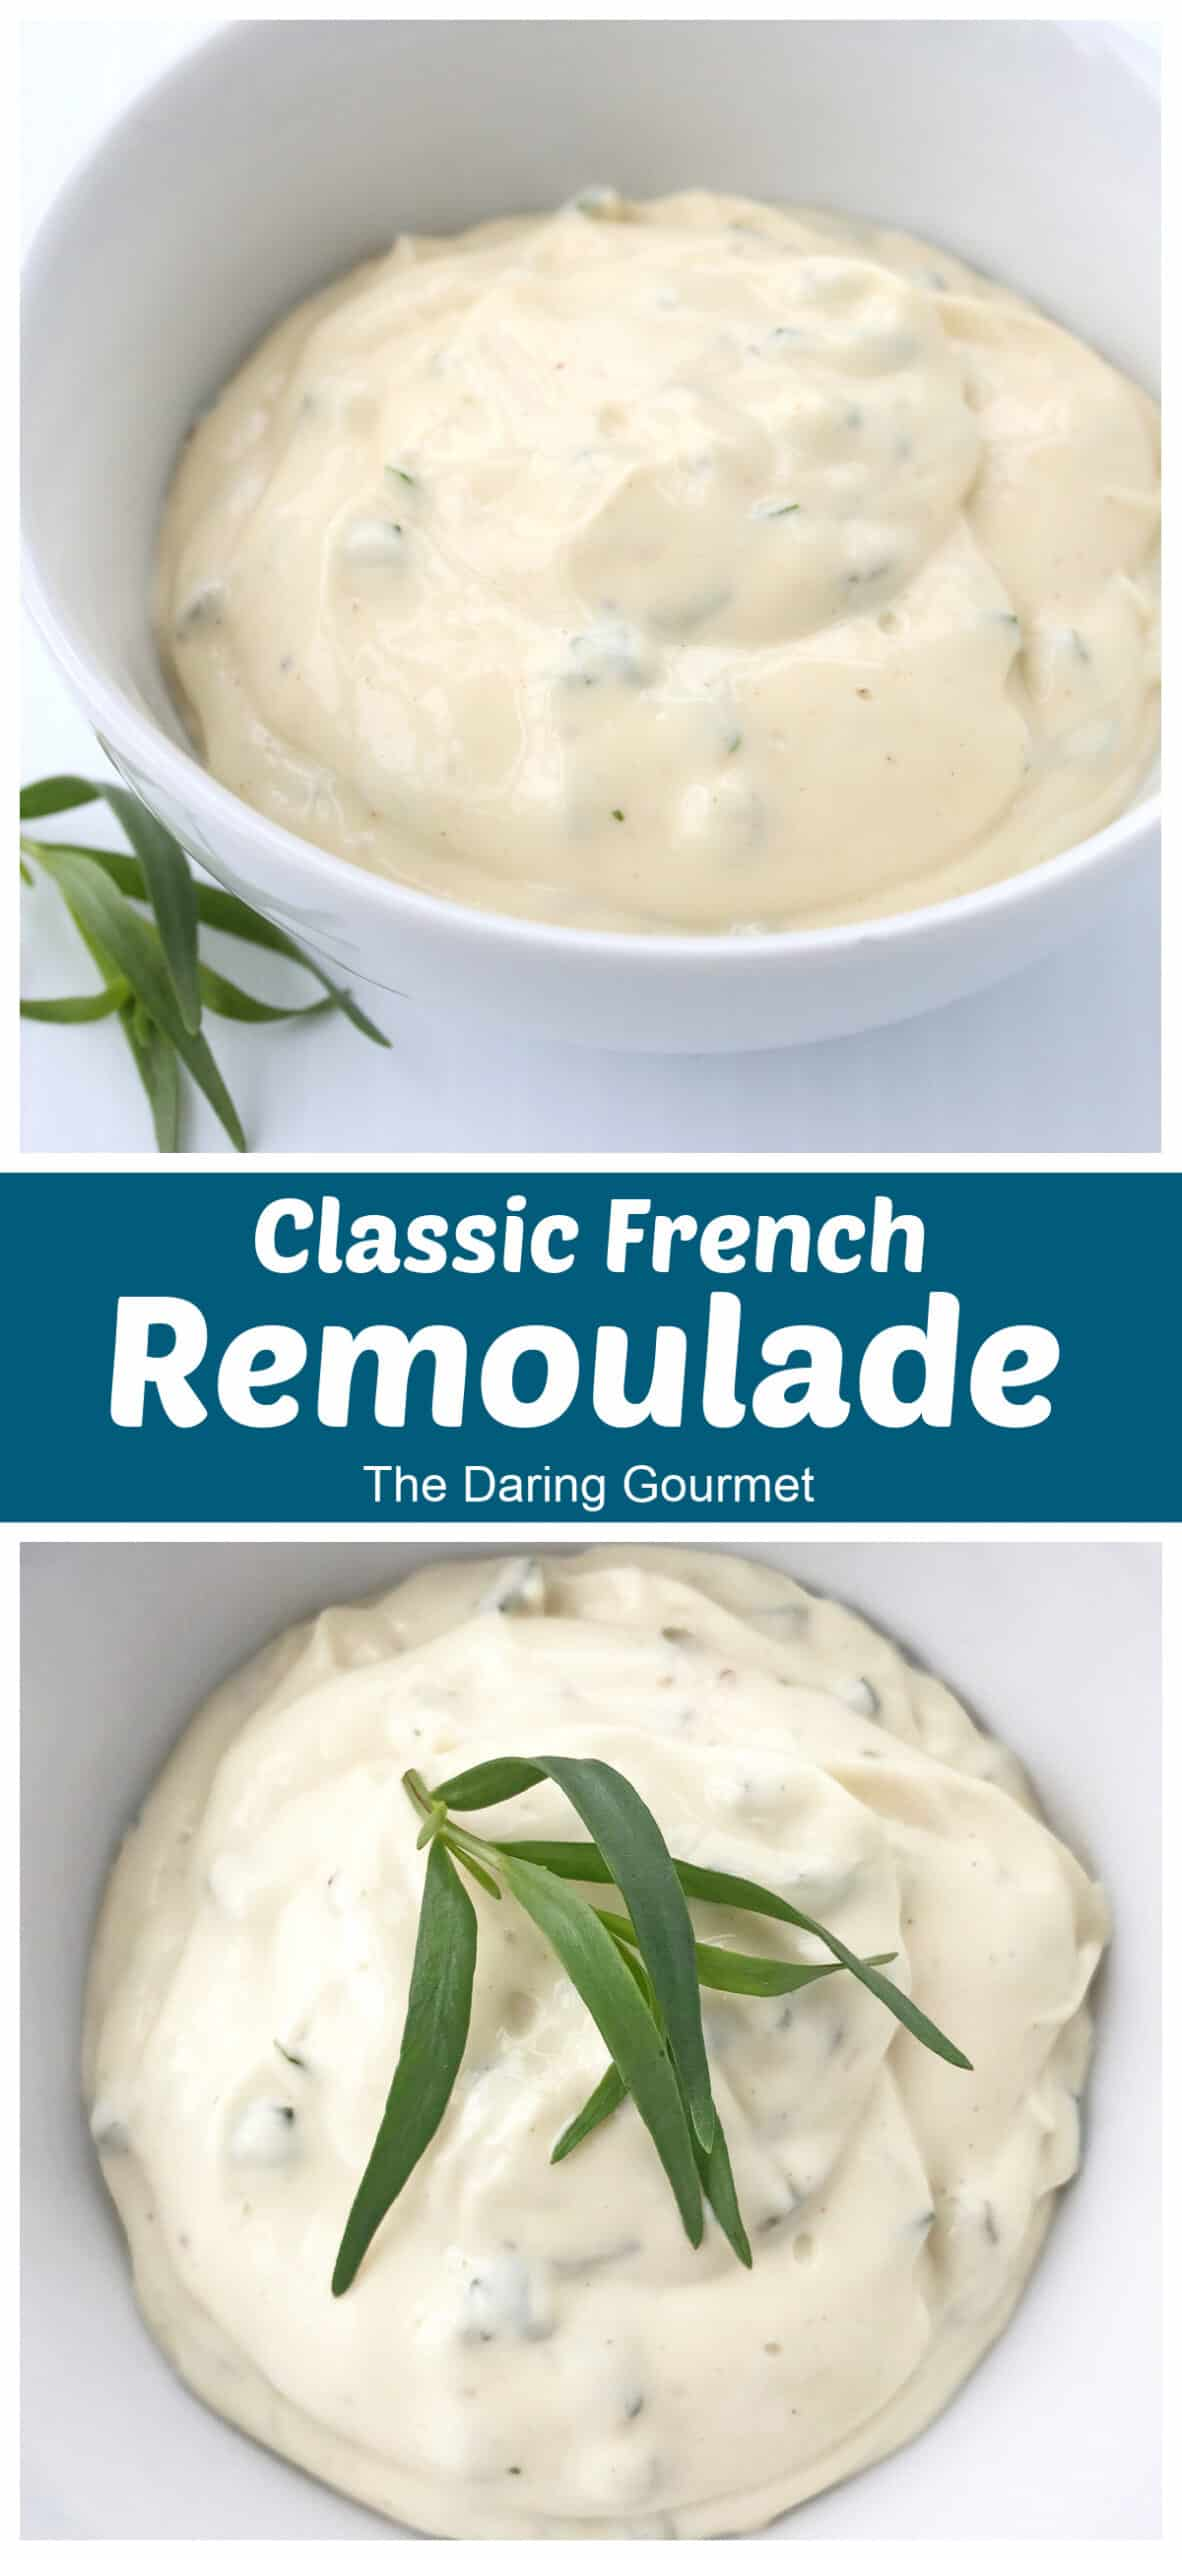 remoulade recipe best classic french sauce condiment mayonnaise pickles cornichons tarragon